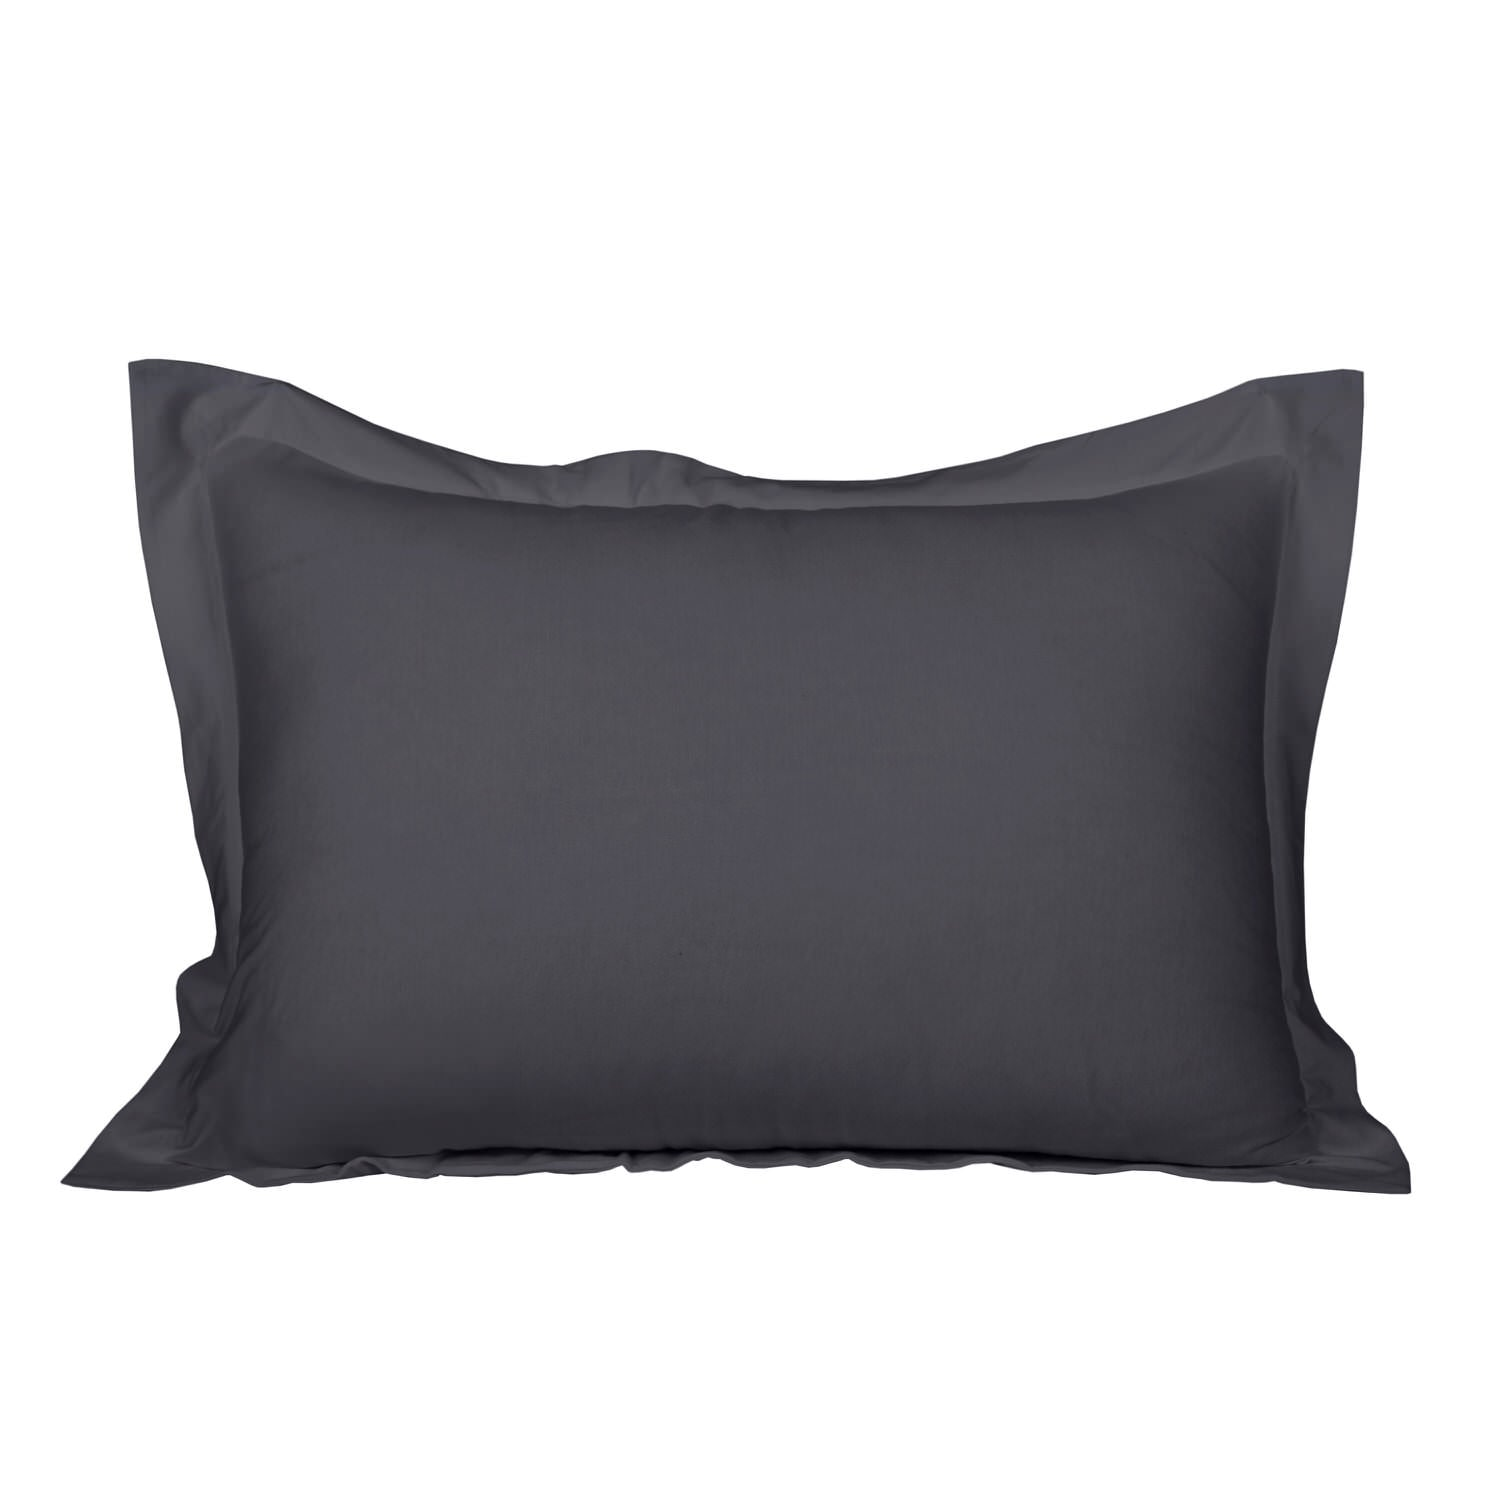 100% Premium Combed Cotton Jersey Dark Grey Fitted Pillow Case Set With Aloe Vera Treatment